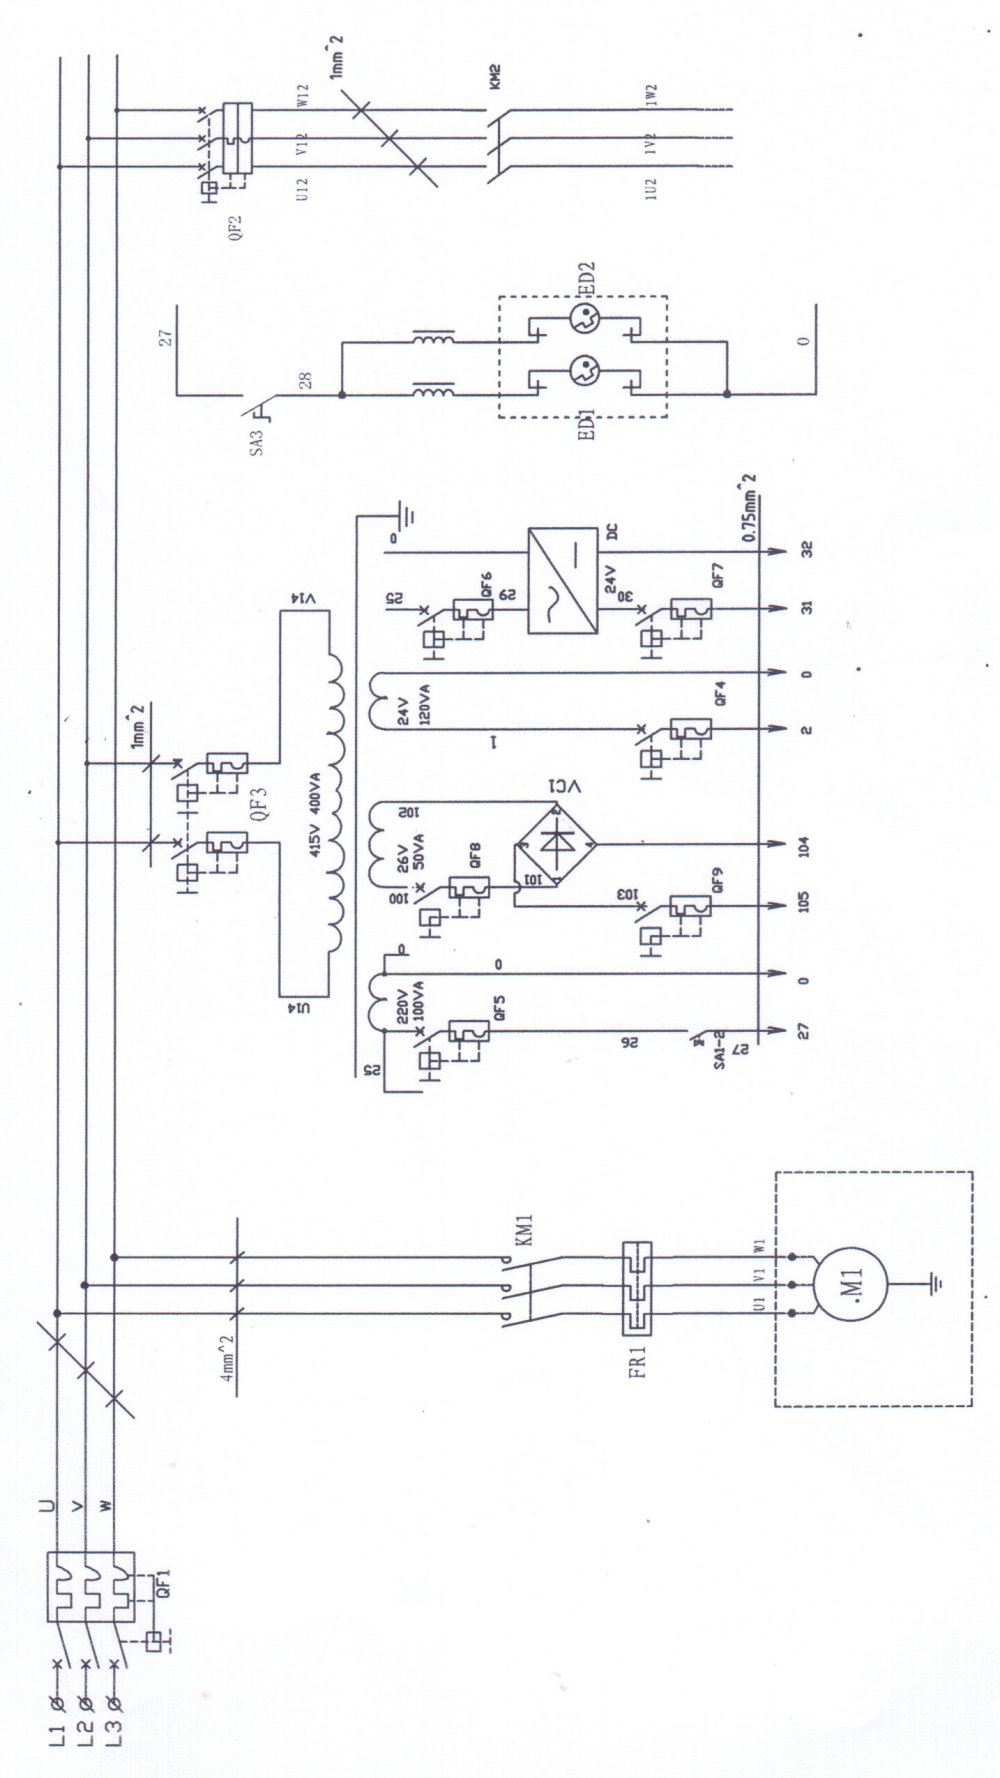 medium resolution of limit switch wiring diagram hydraulic ram wiring library honeywell limit switch wire diagram limit switch wiring diagram hydraulic ram